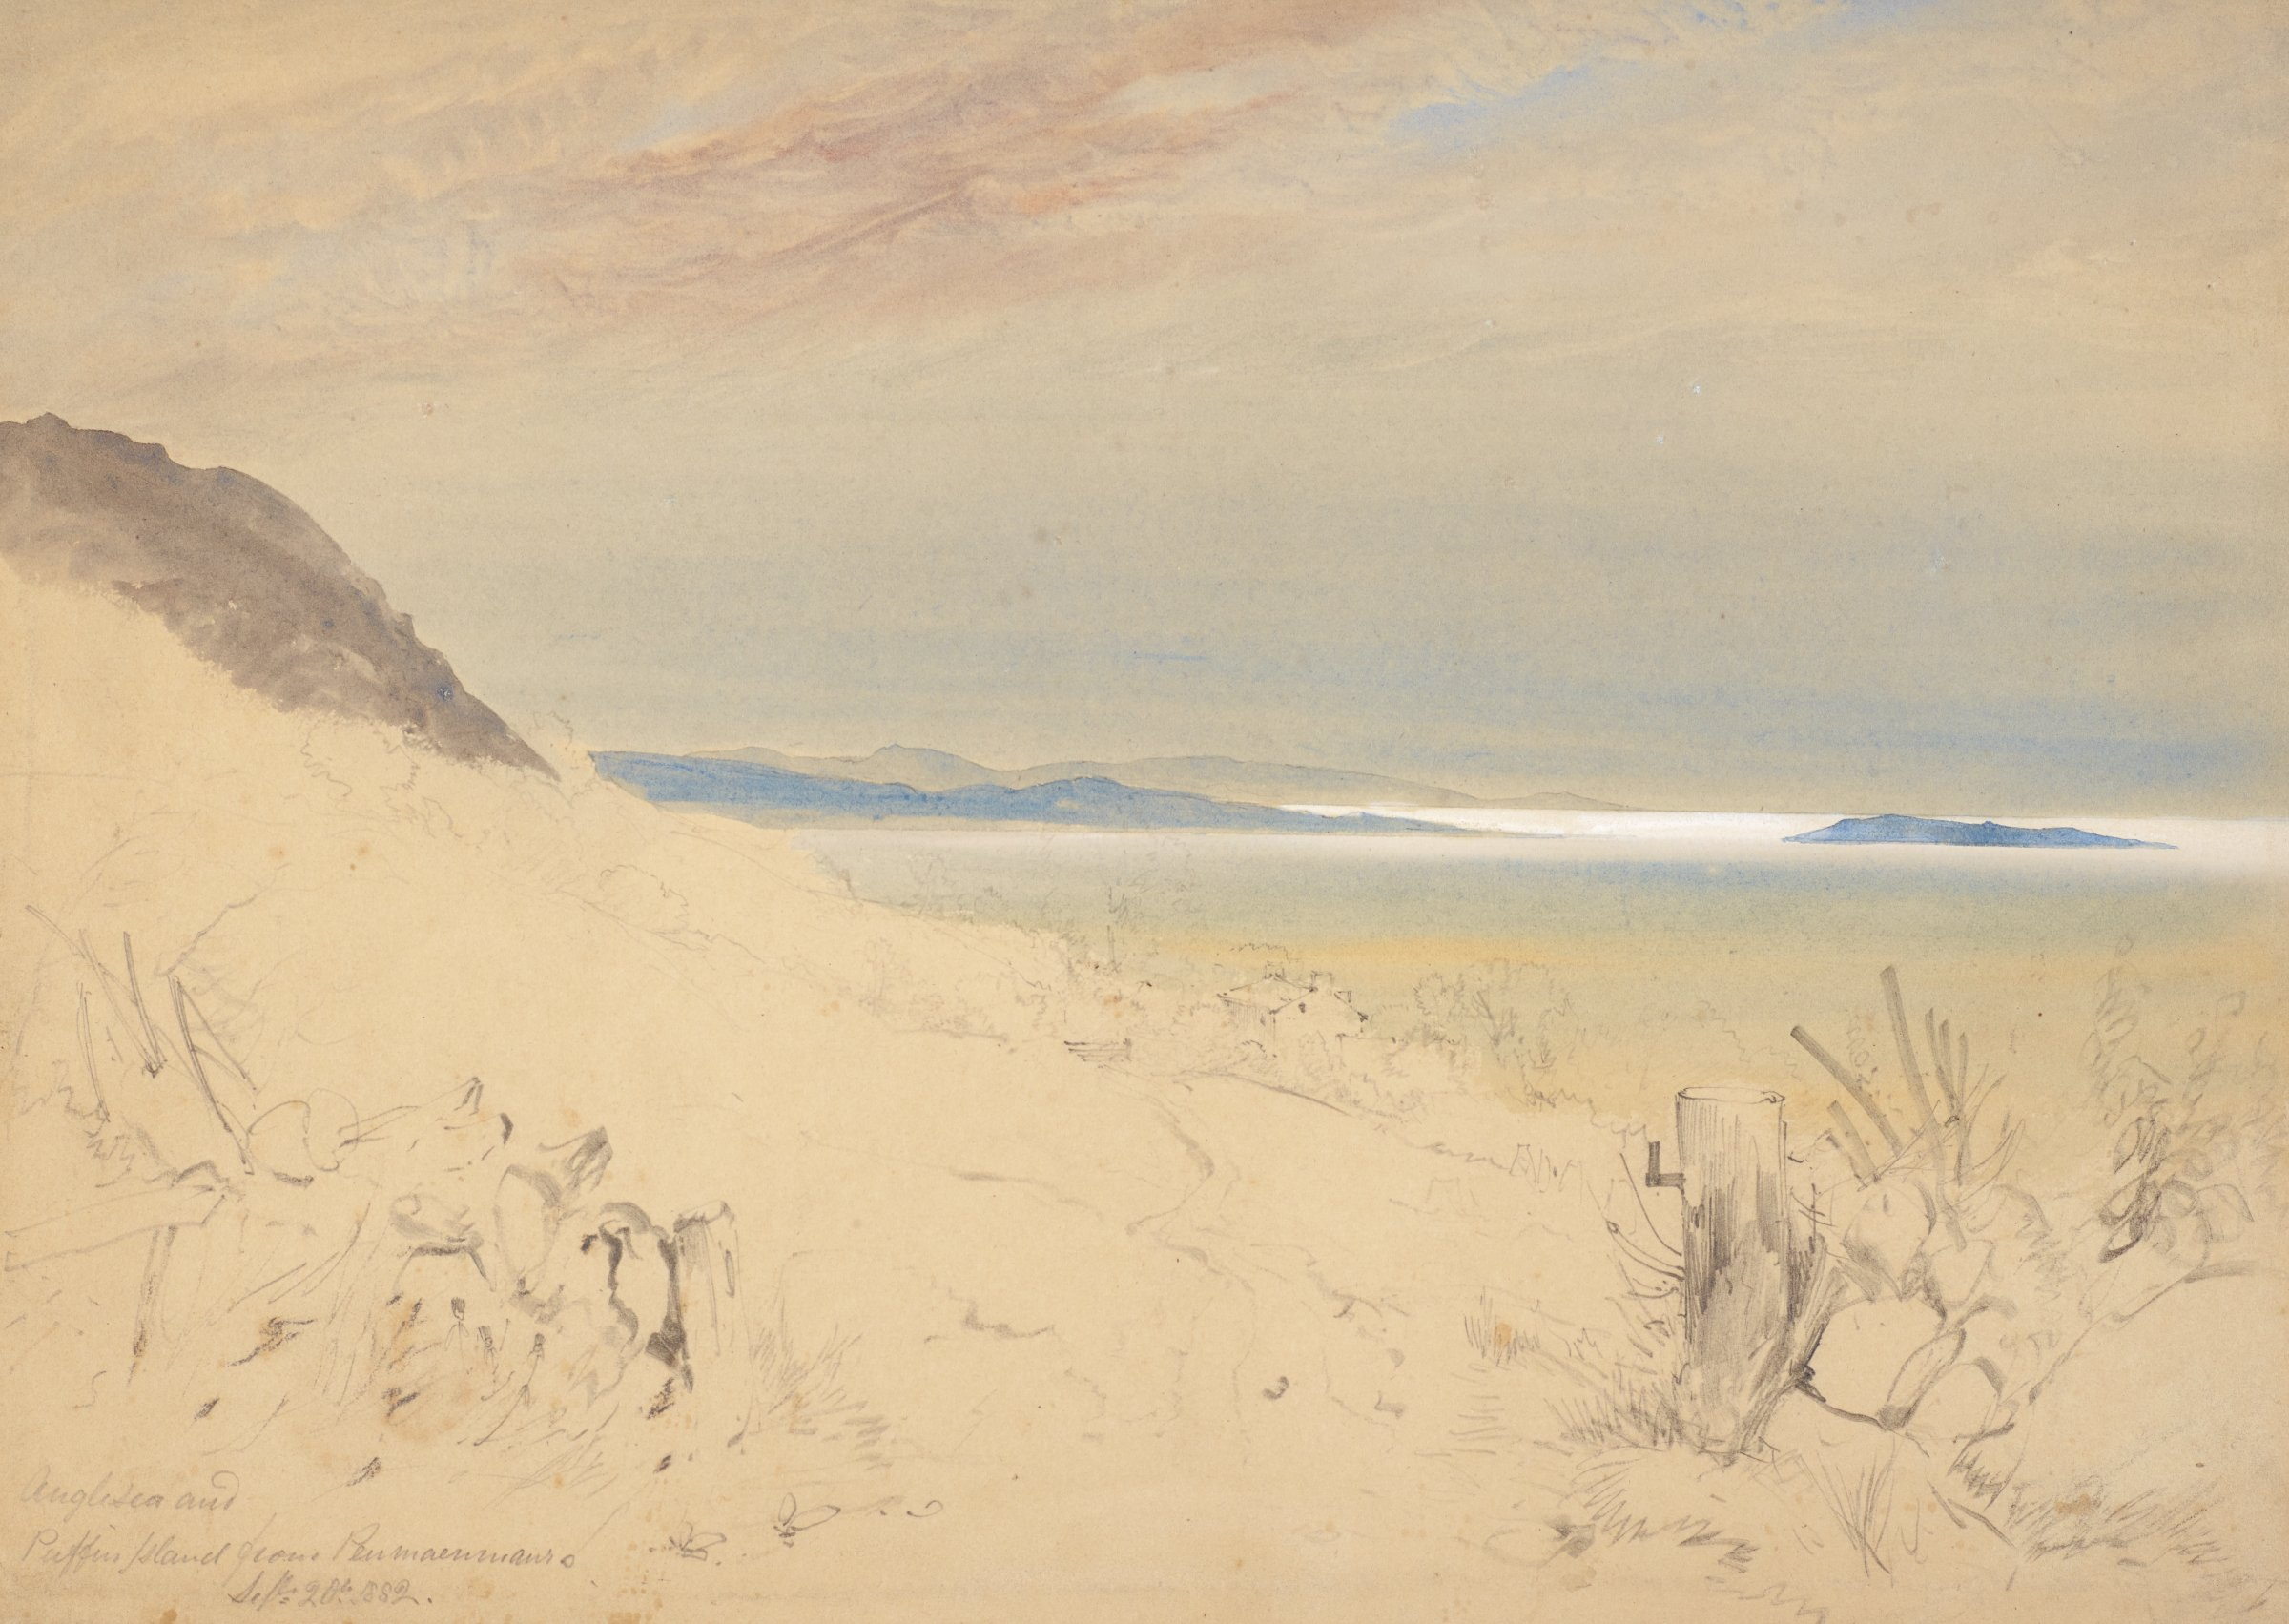 View of a mountainous coast from a sandy beach. Two short wooden posts mark a pathway in the foreground.